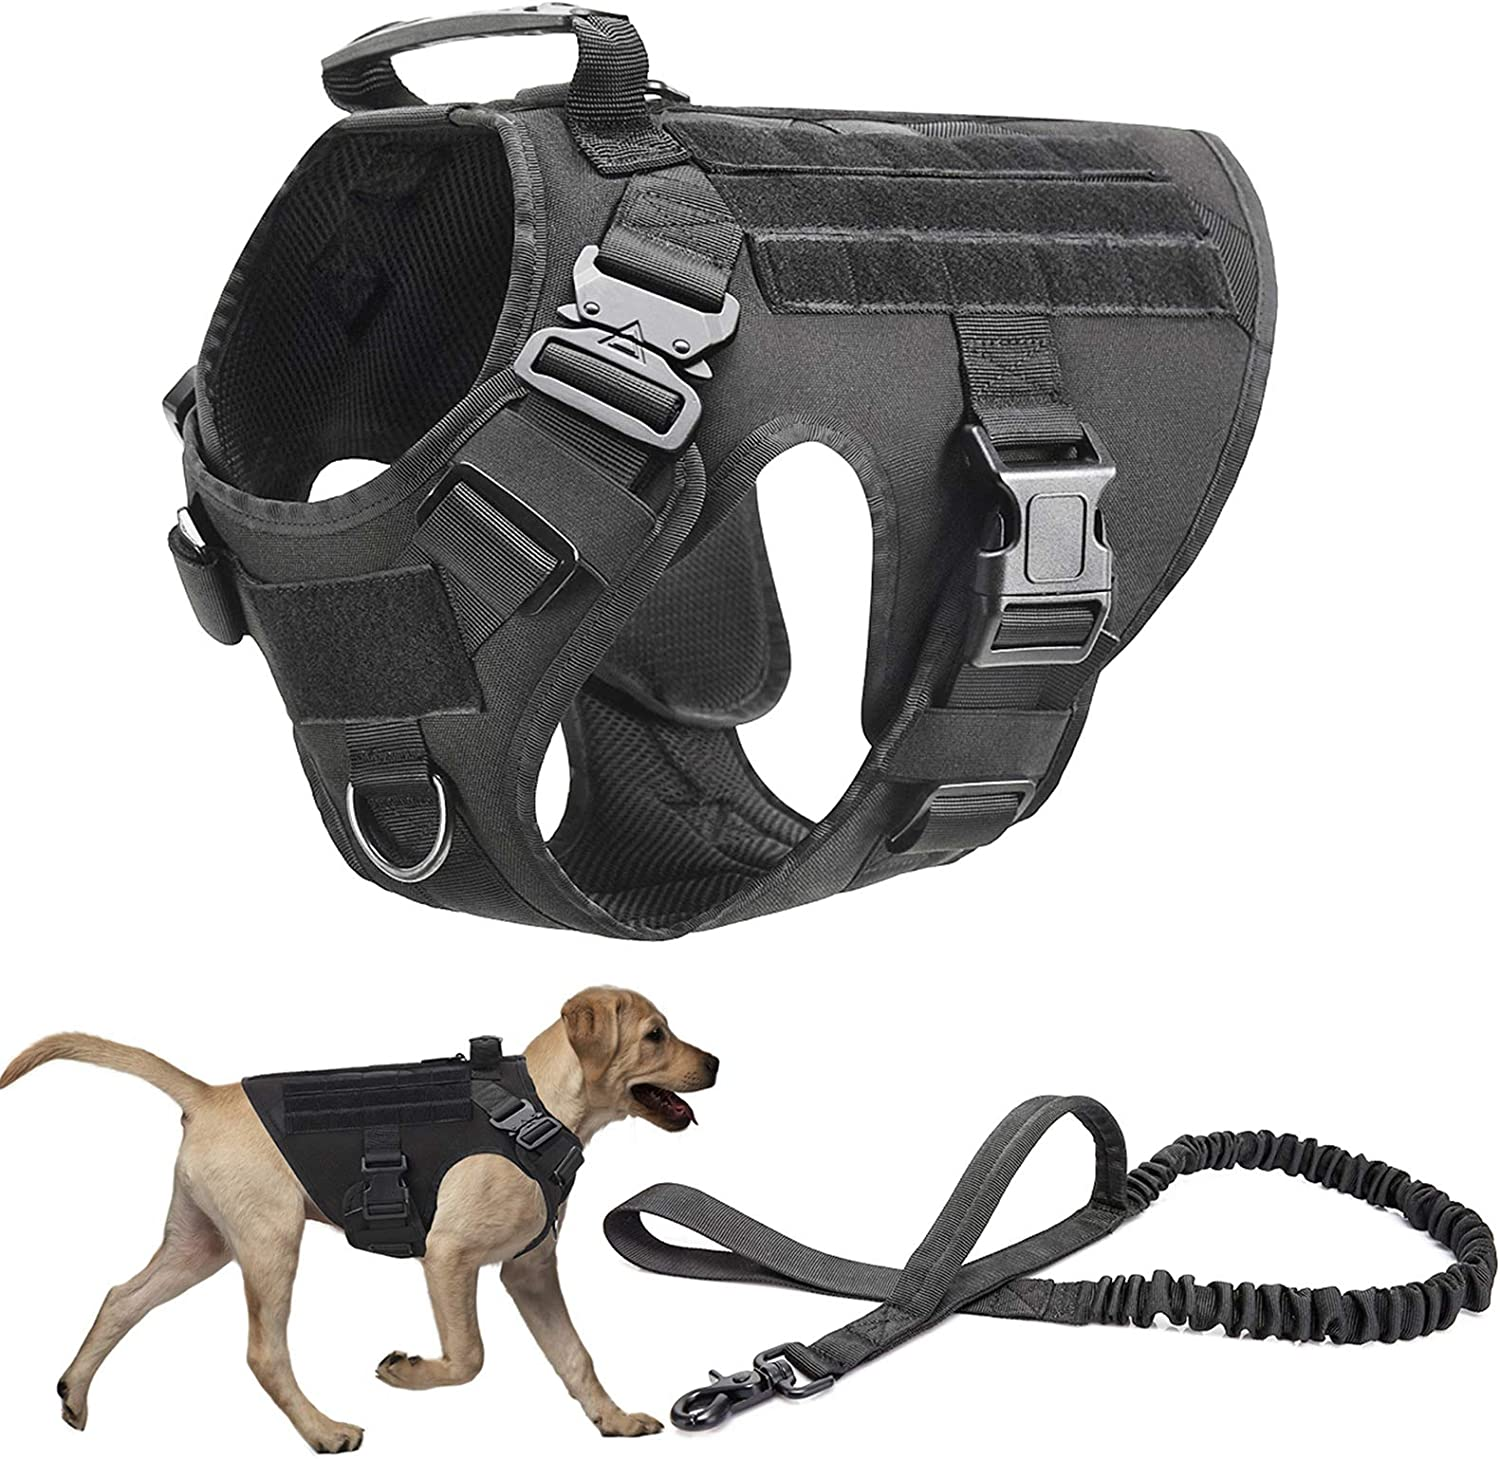 PJDDP Tactical Dog Harness specialty shop and Bungee Set Detroit Mall Me Leash for Large